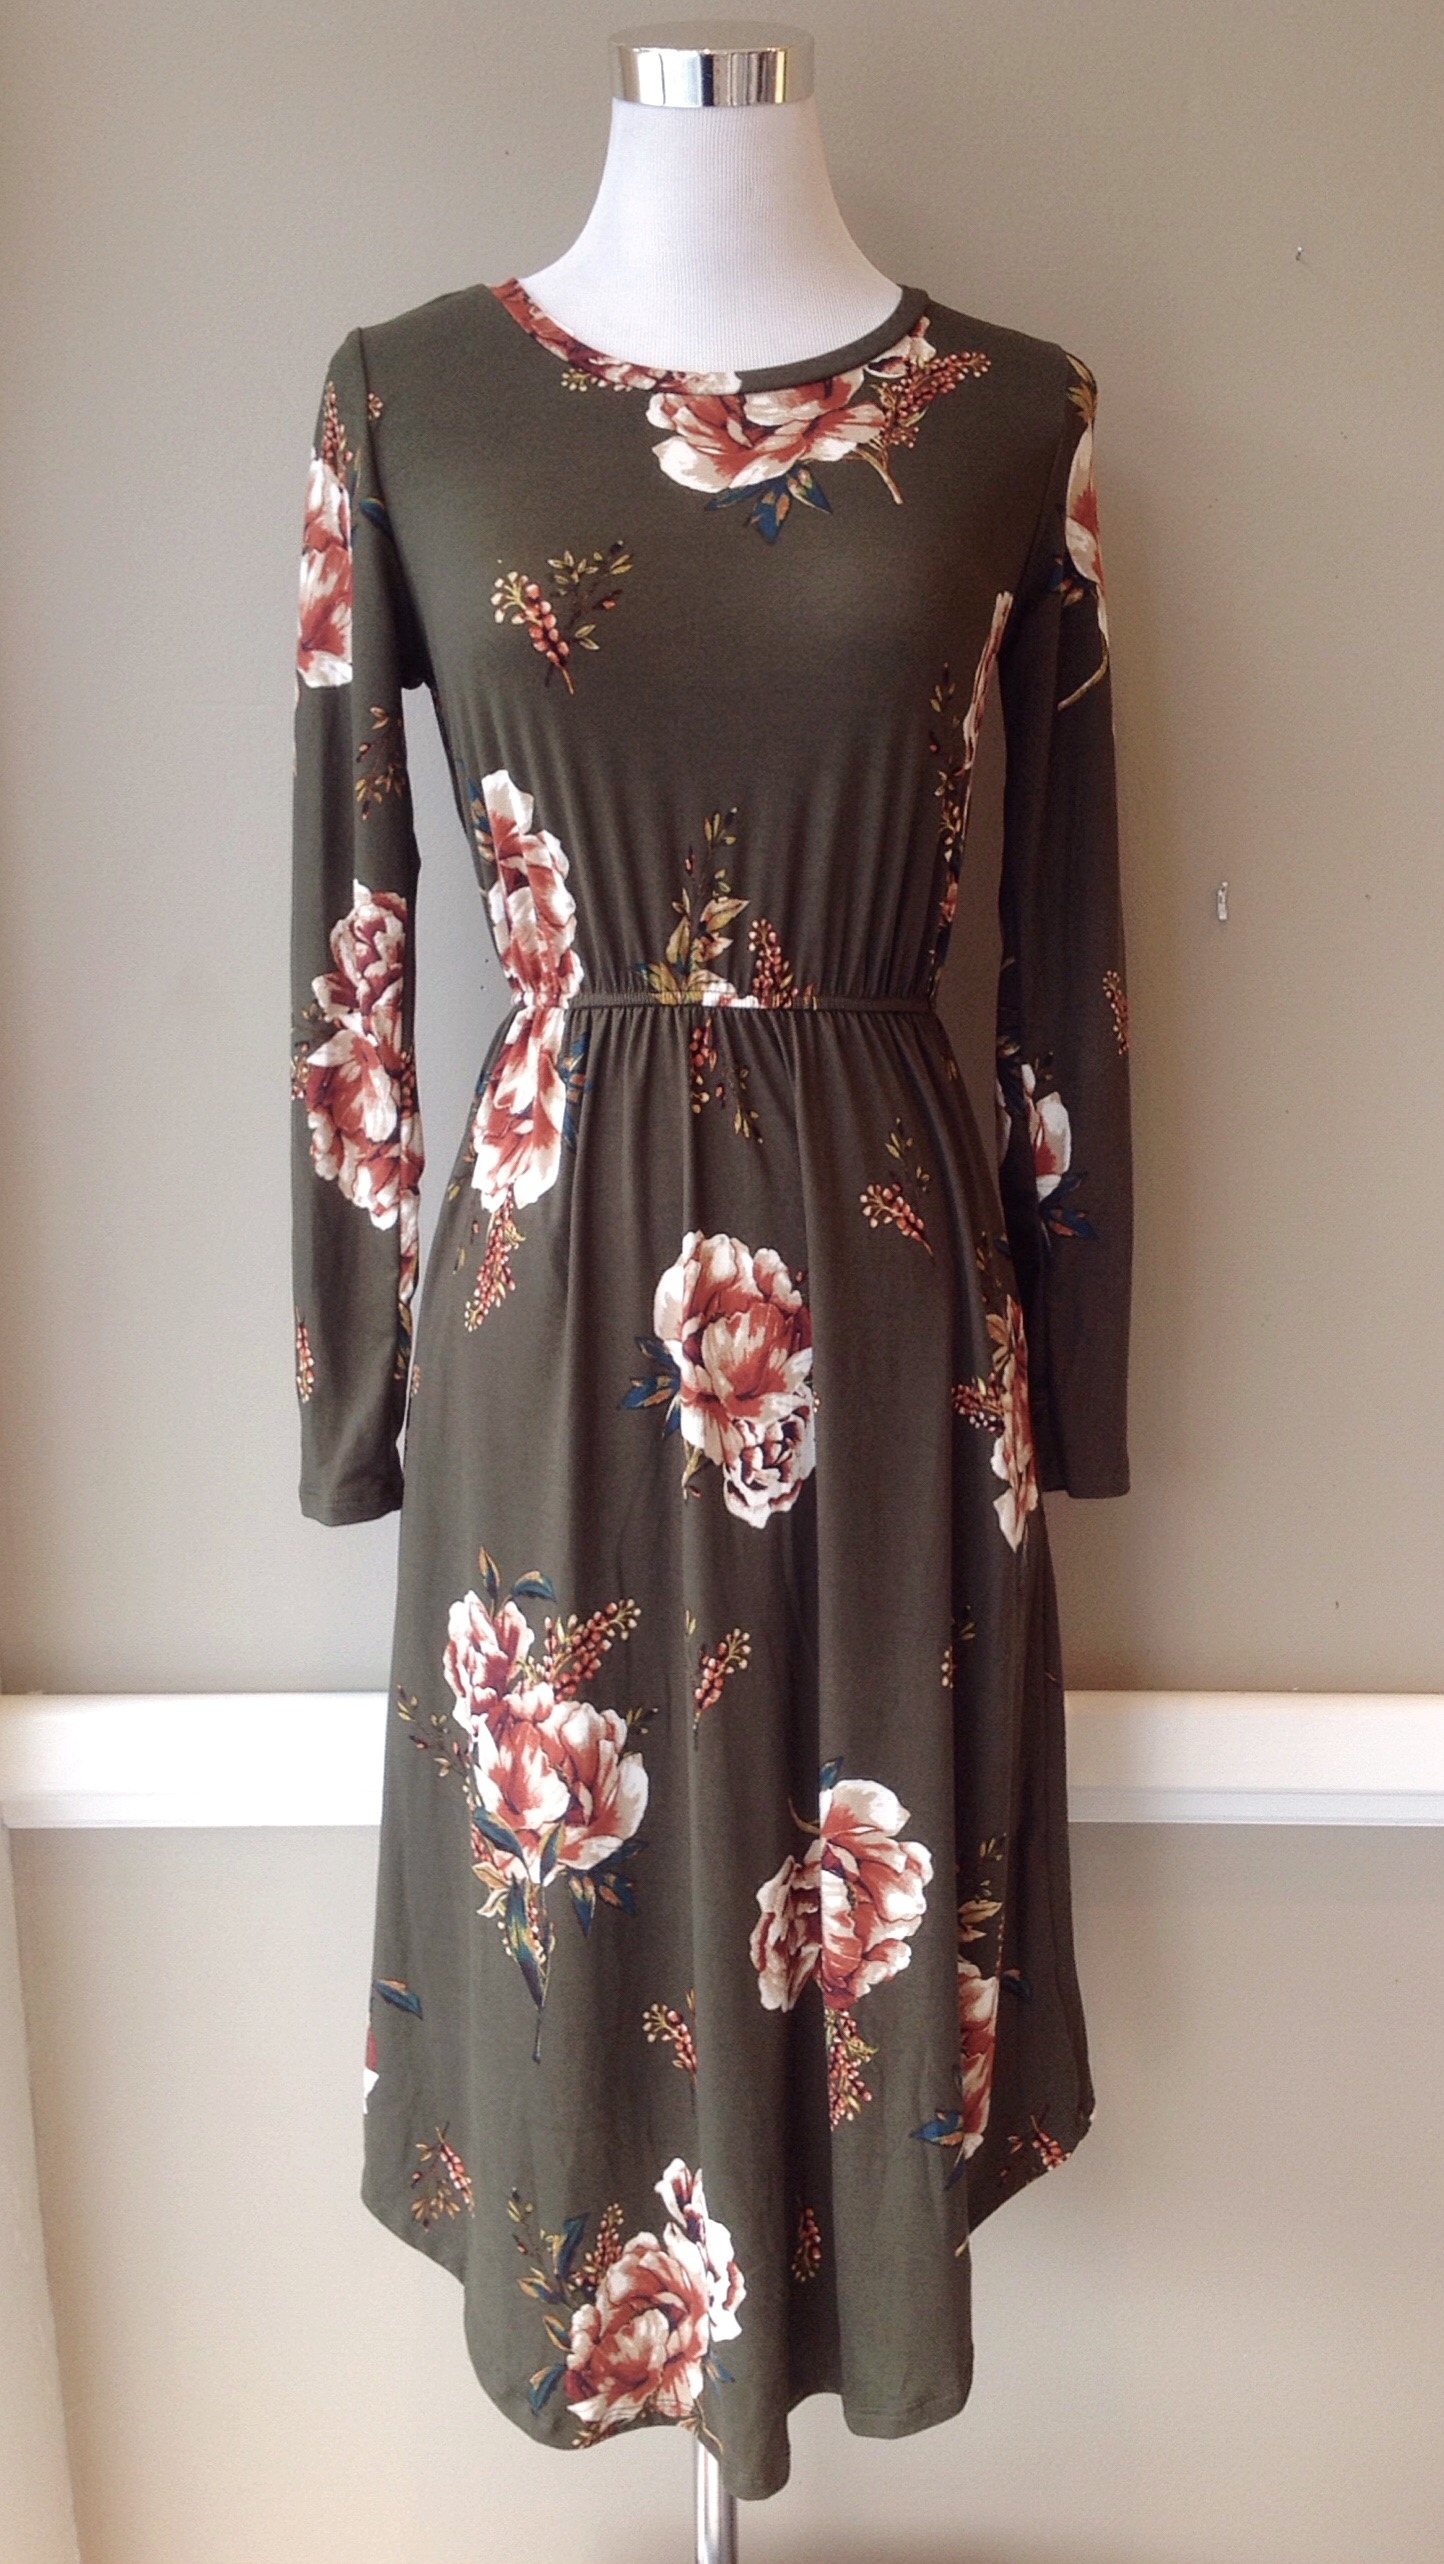 And olive floral.